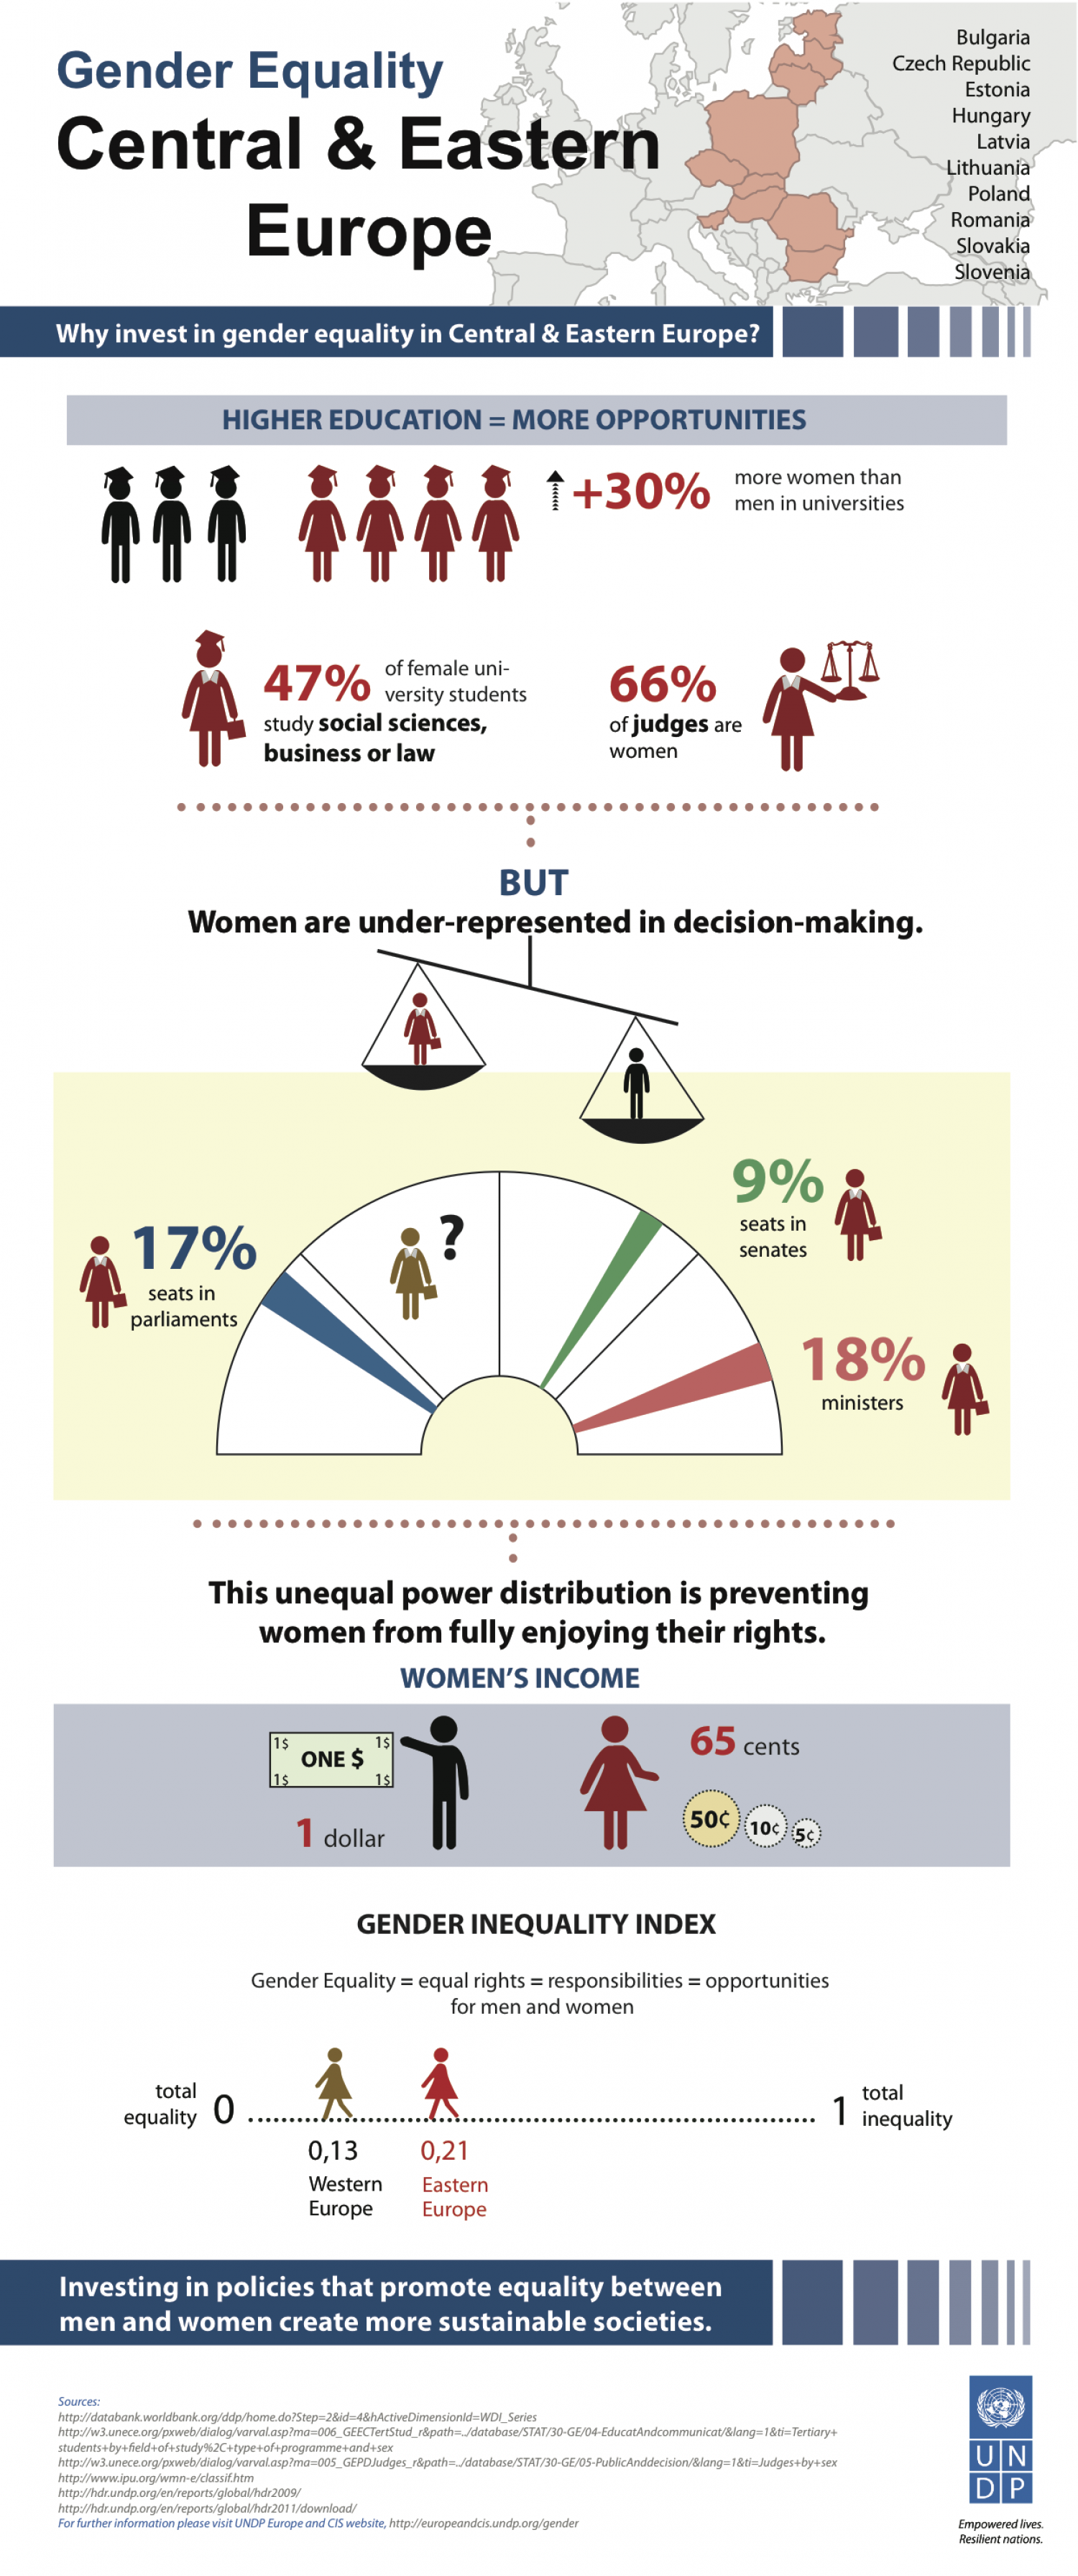 Gender Equality: Central & Eastern Europe Infographic